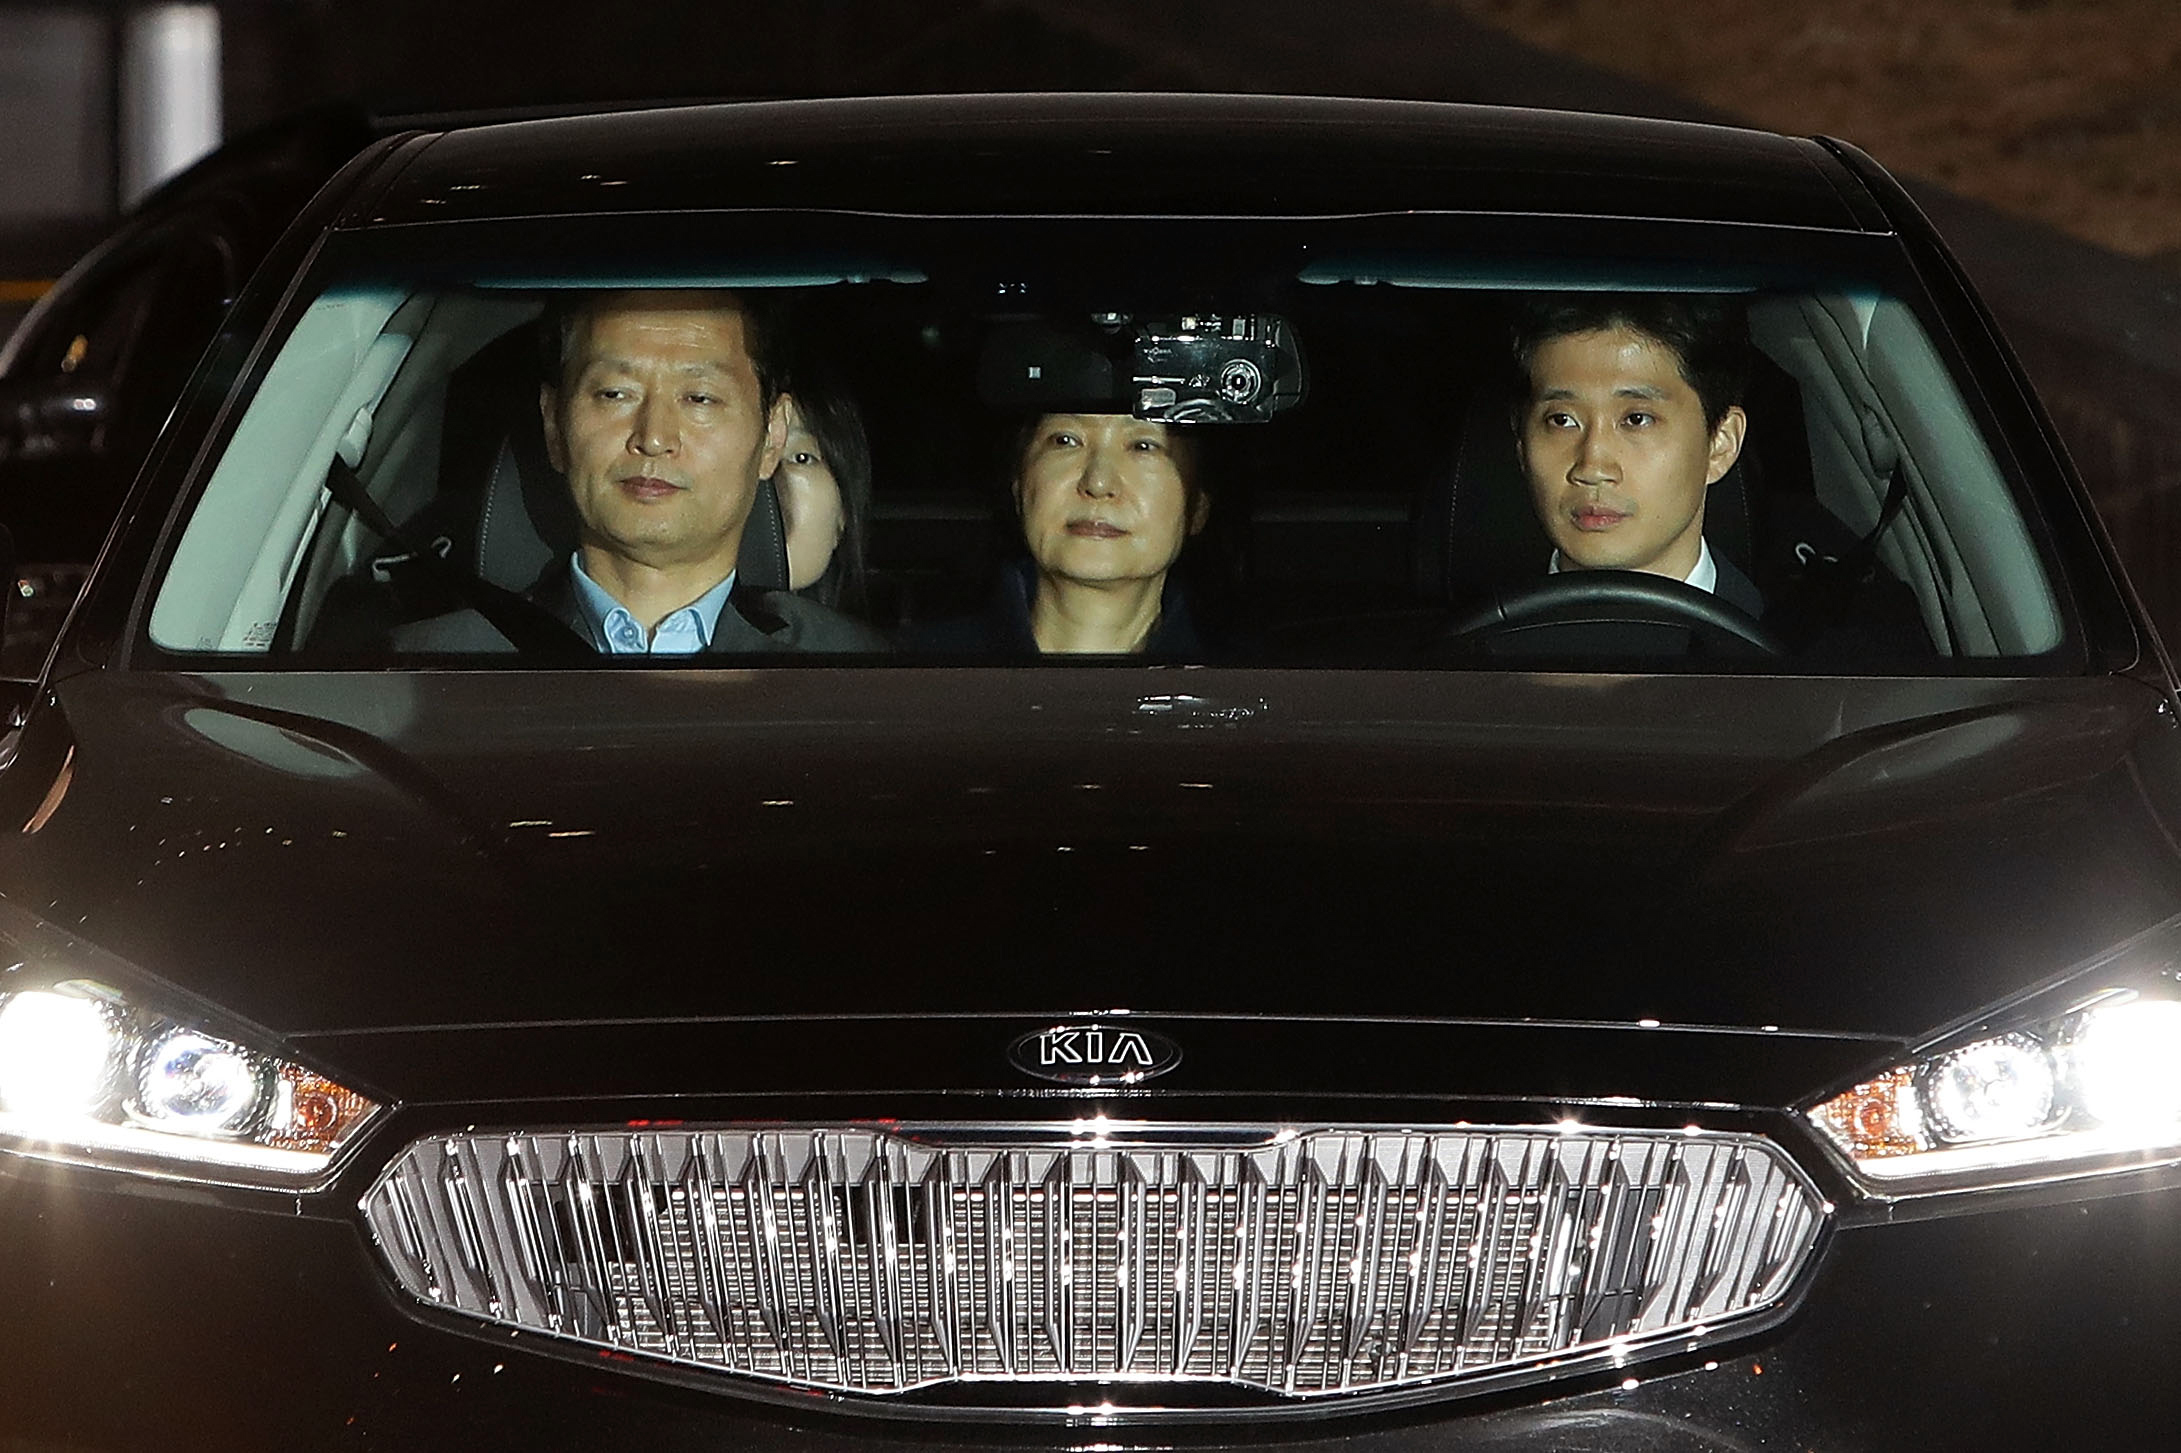 TOPSHOT - Ousted South Korean President Park Geun-hye (C), leaves the prosecutors' office in a car as she is transferred to a detention house early on March 31, 2017 in Seoul, South Korea. South Korea's ousted President Park Geun-hye was arrested early on March 31 over the corruption and abuse of power scandal that brought her down, a court spokesman said. / AFP PHOTO / POOL / Chung Sung-Jun / TT / kod 444